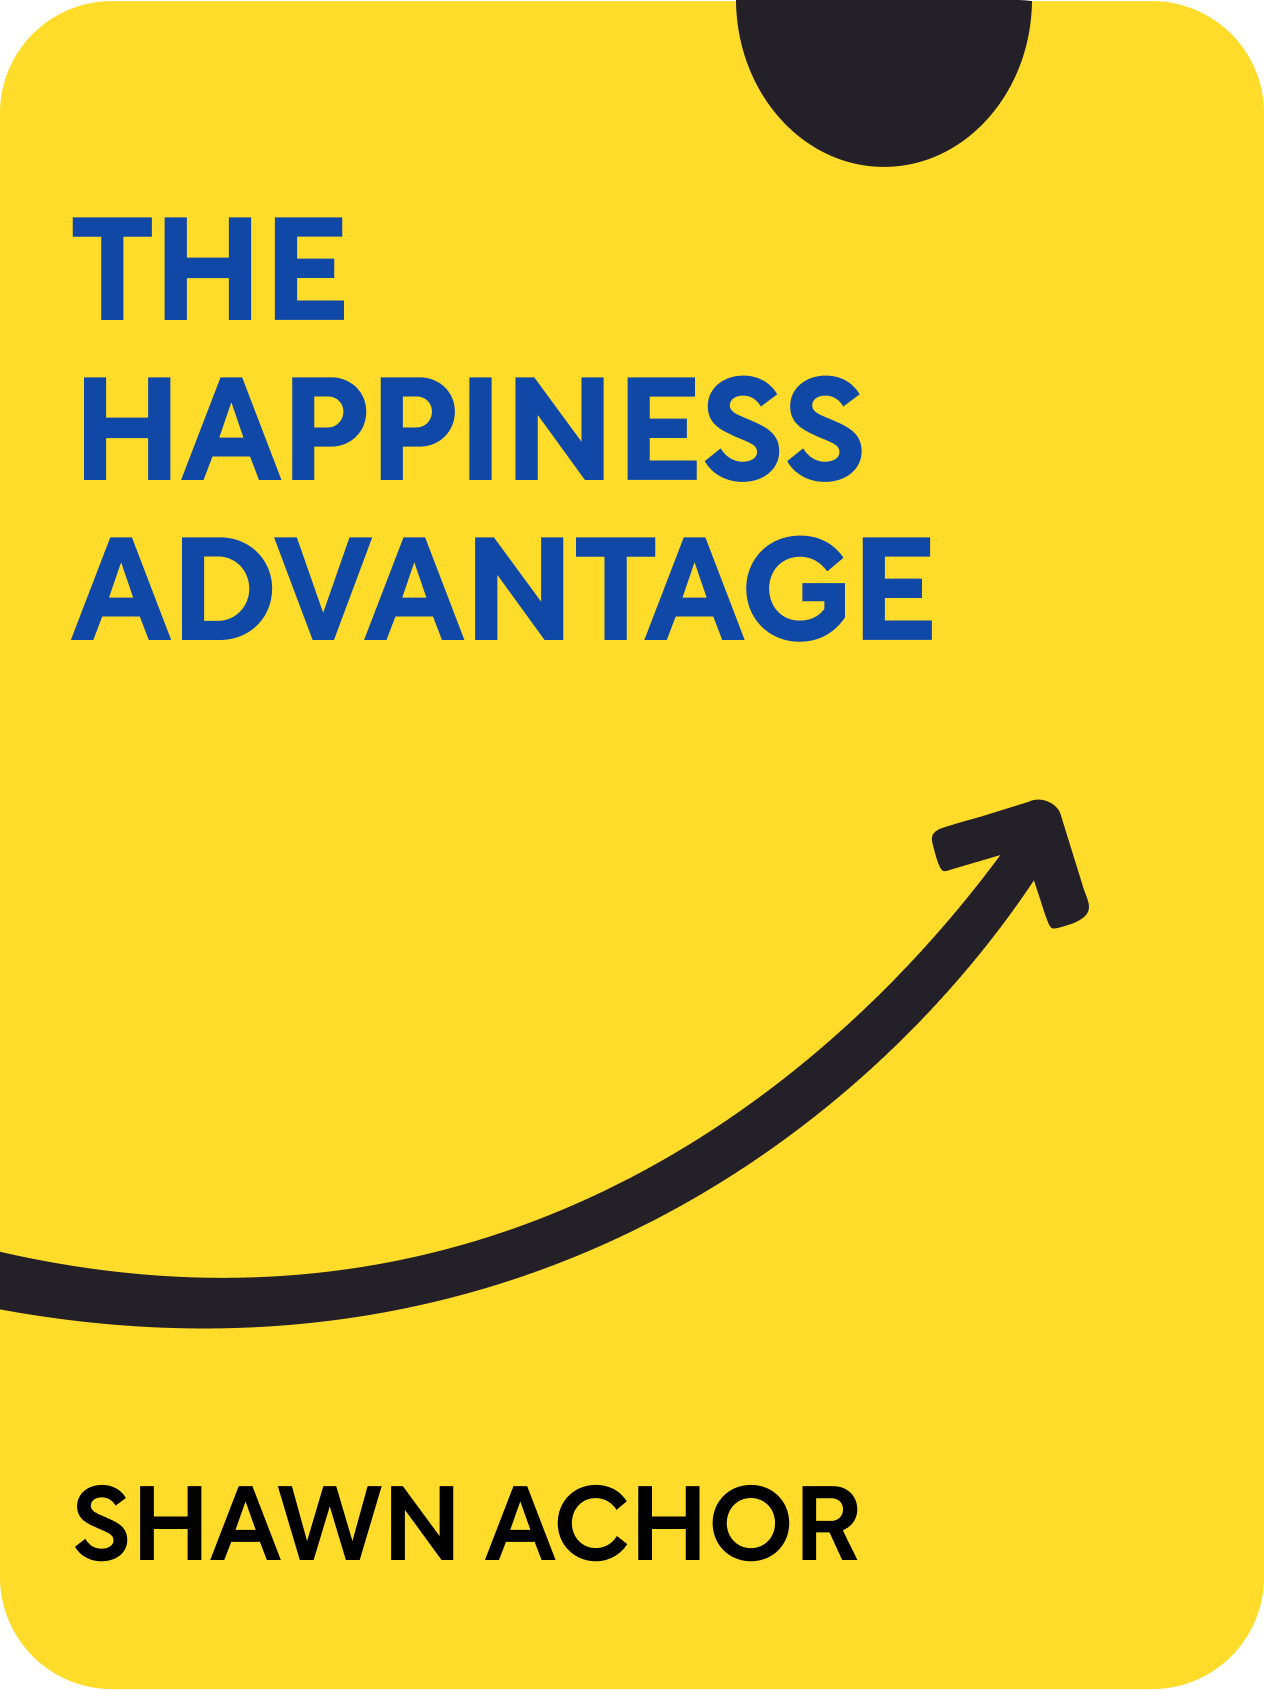 The Happiness Advantage Book Summary by Shawn Achor